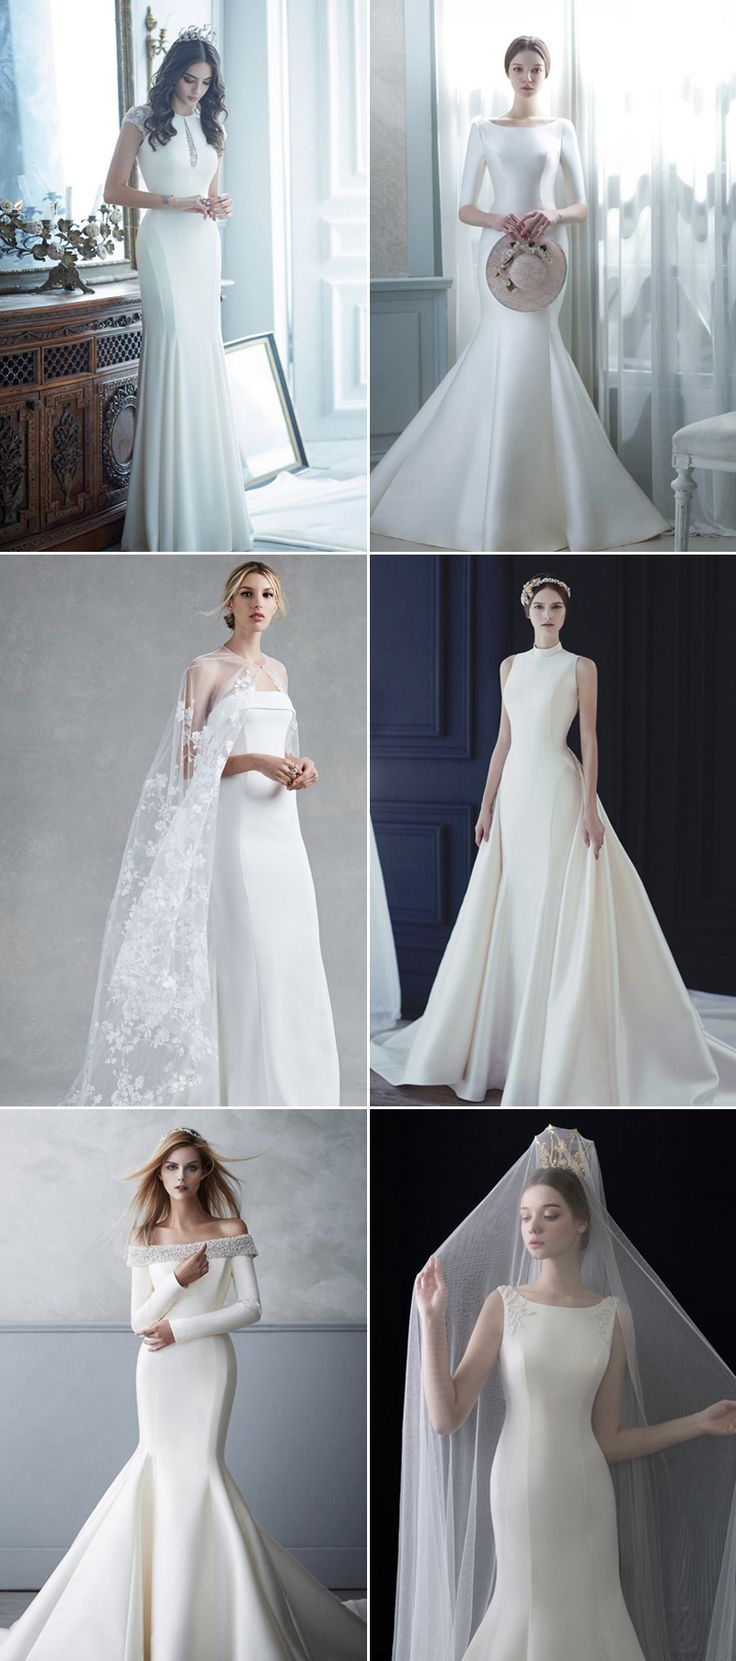 Wedding dress regret is painful, you don't want to look back on your wedding photos years later and cringe at what you wore. How do you choose a wedding dress you love now, and be sure that it won't go out of style 30 years later? The key is look for timeless characteristics and details. …